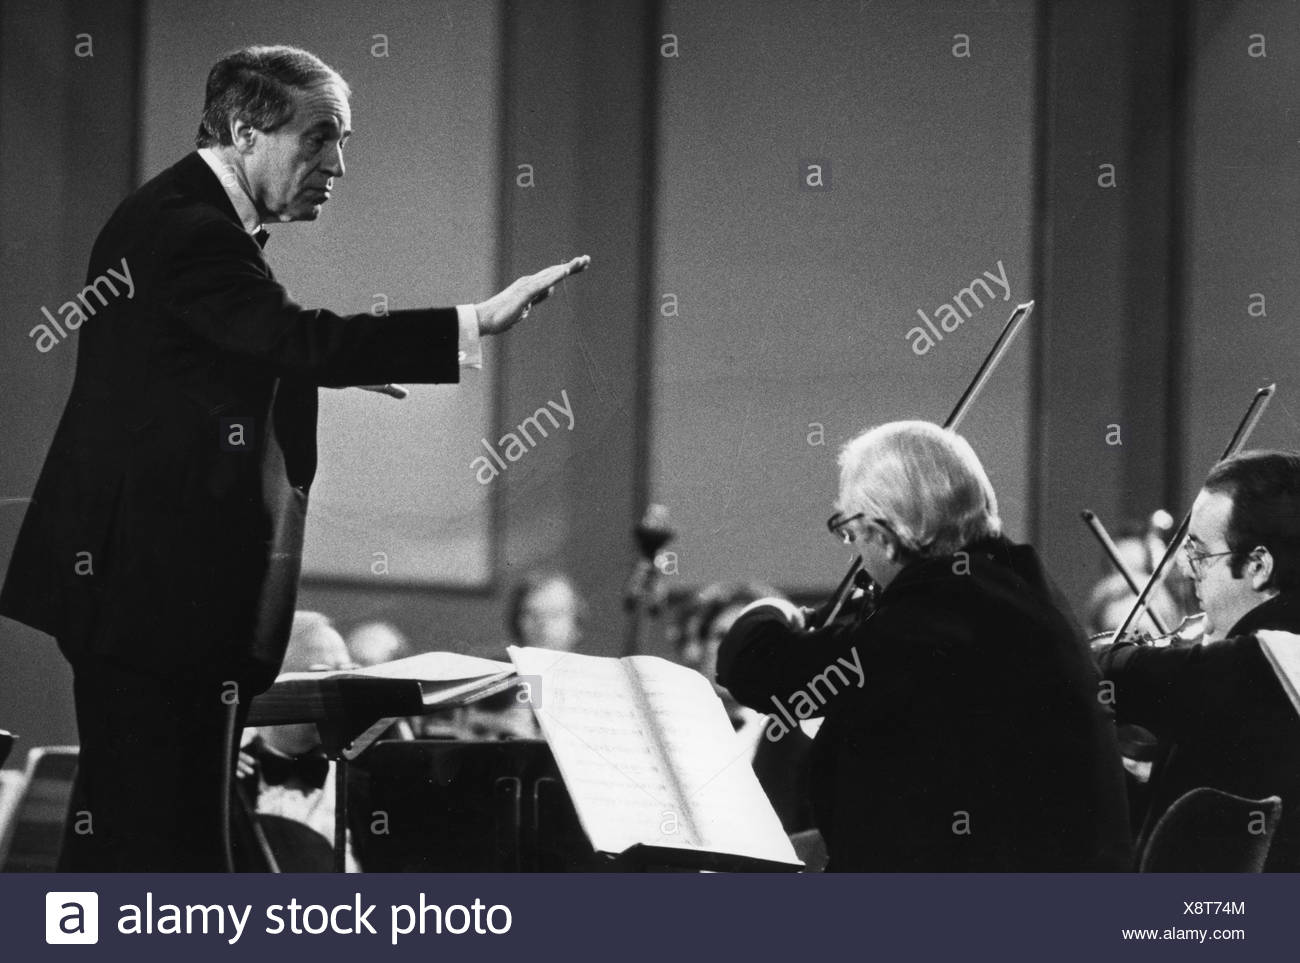 Boulez, Pierre, 25.3.1925 - 5.1.2016, French composer and conductor, during a concert, conducting, 1990s, Additional-Rights-Clearances-NA - Stock Image